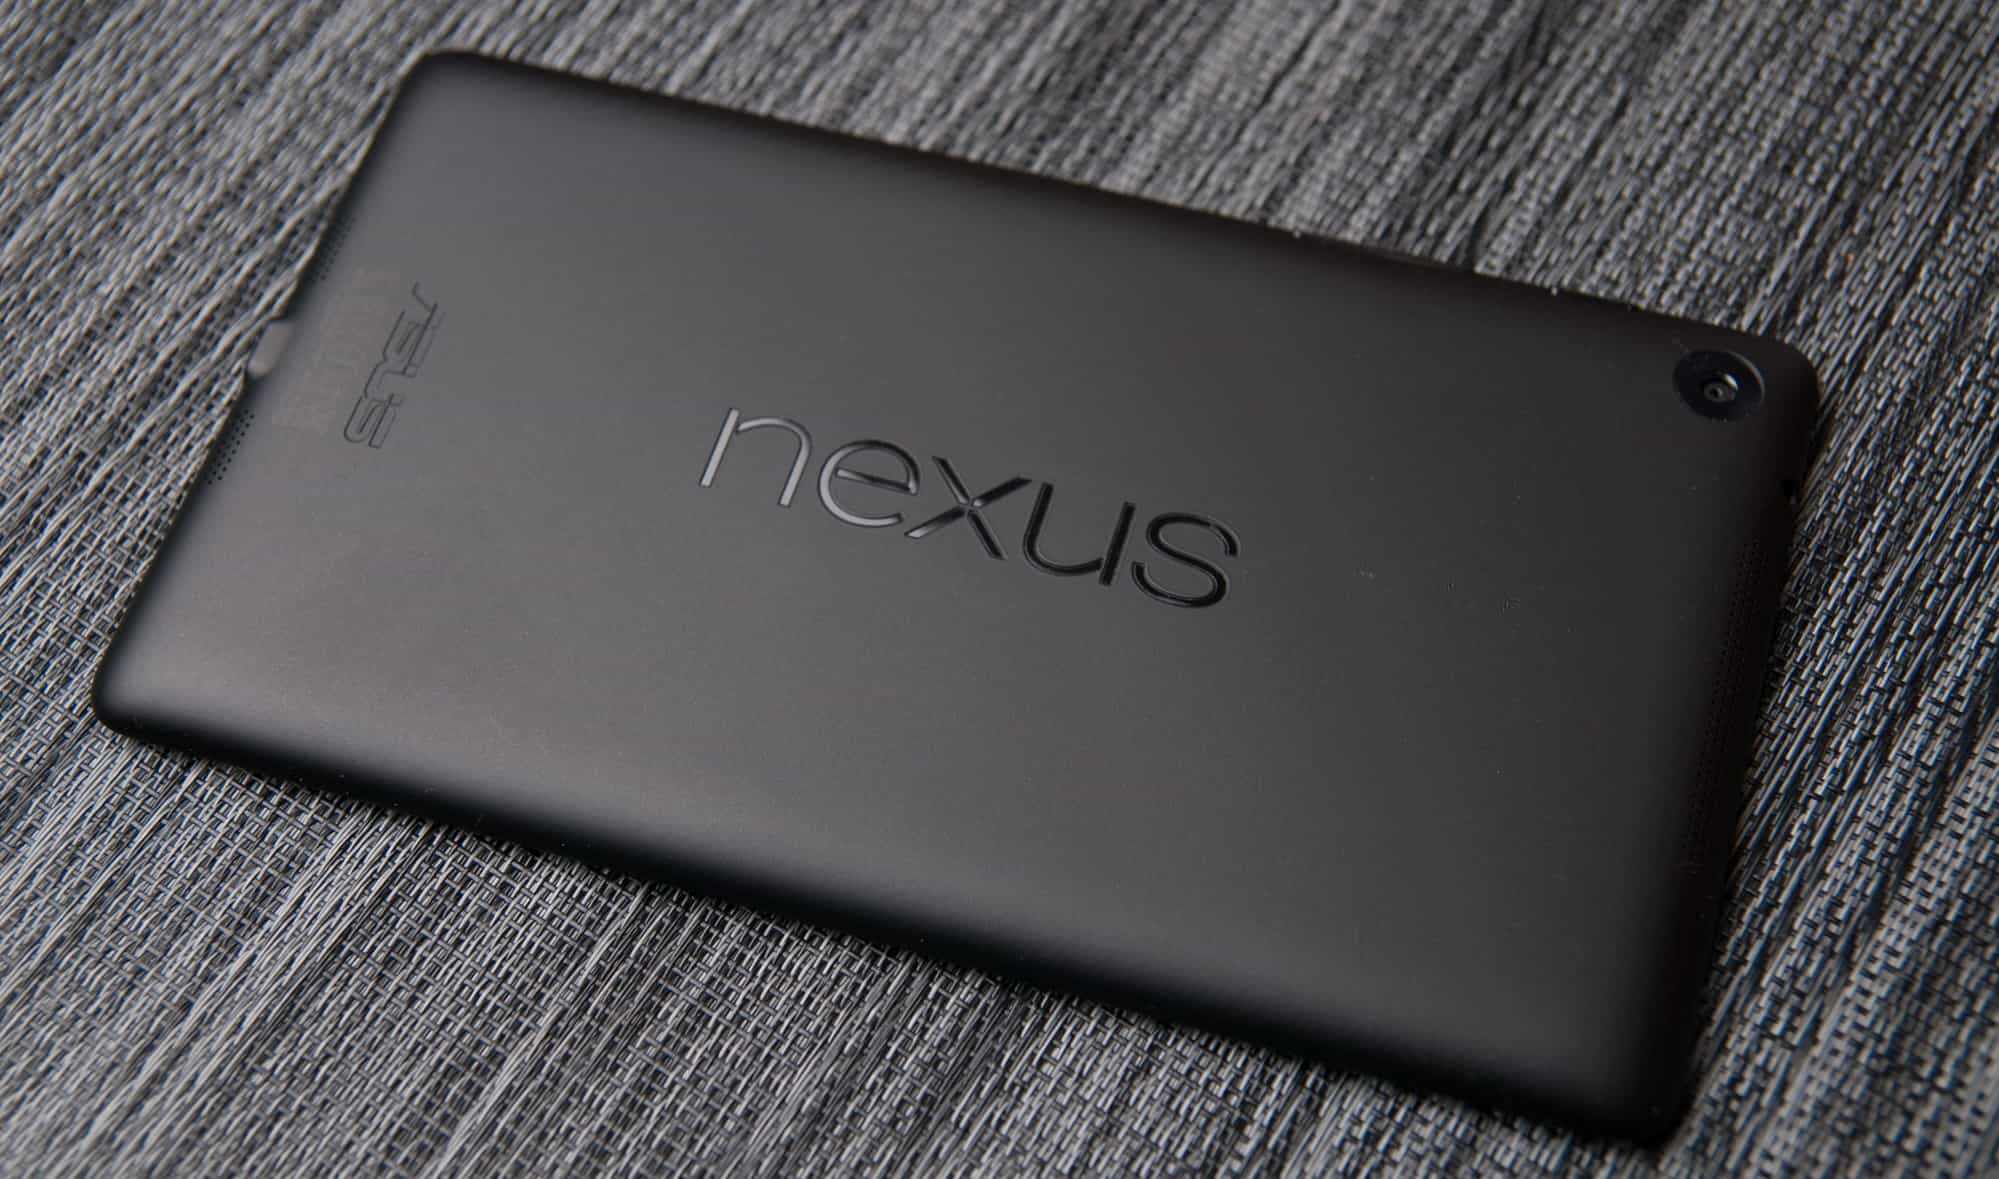 Google And HTC To Launch A Keyboard Folio Case For The Upcoming Nexus Tablet